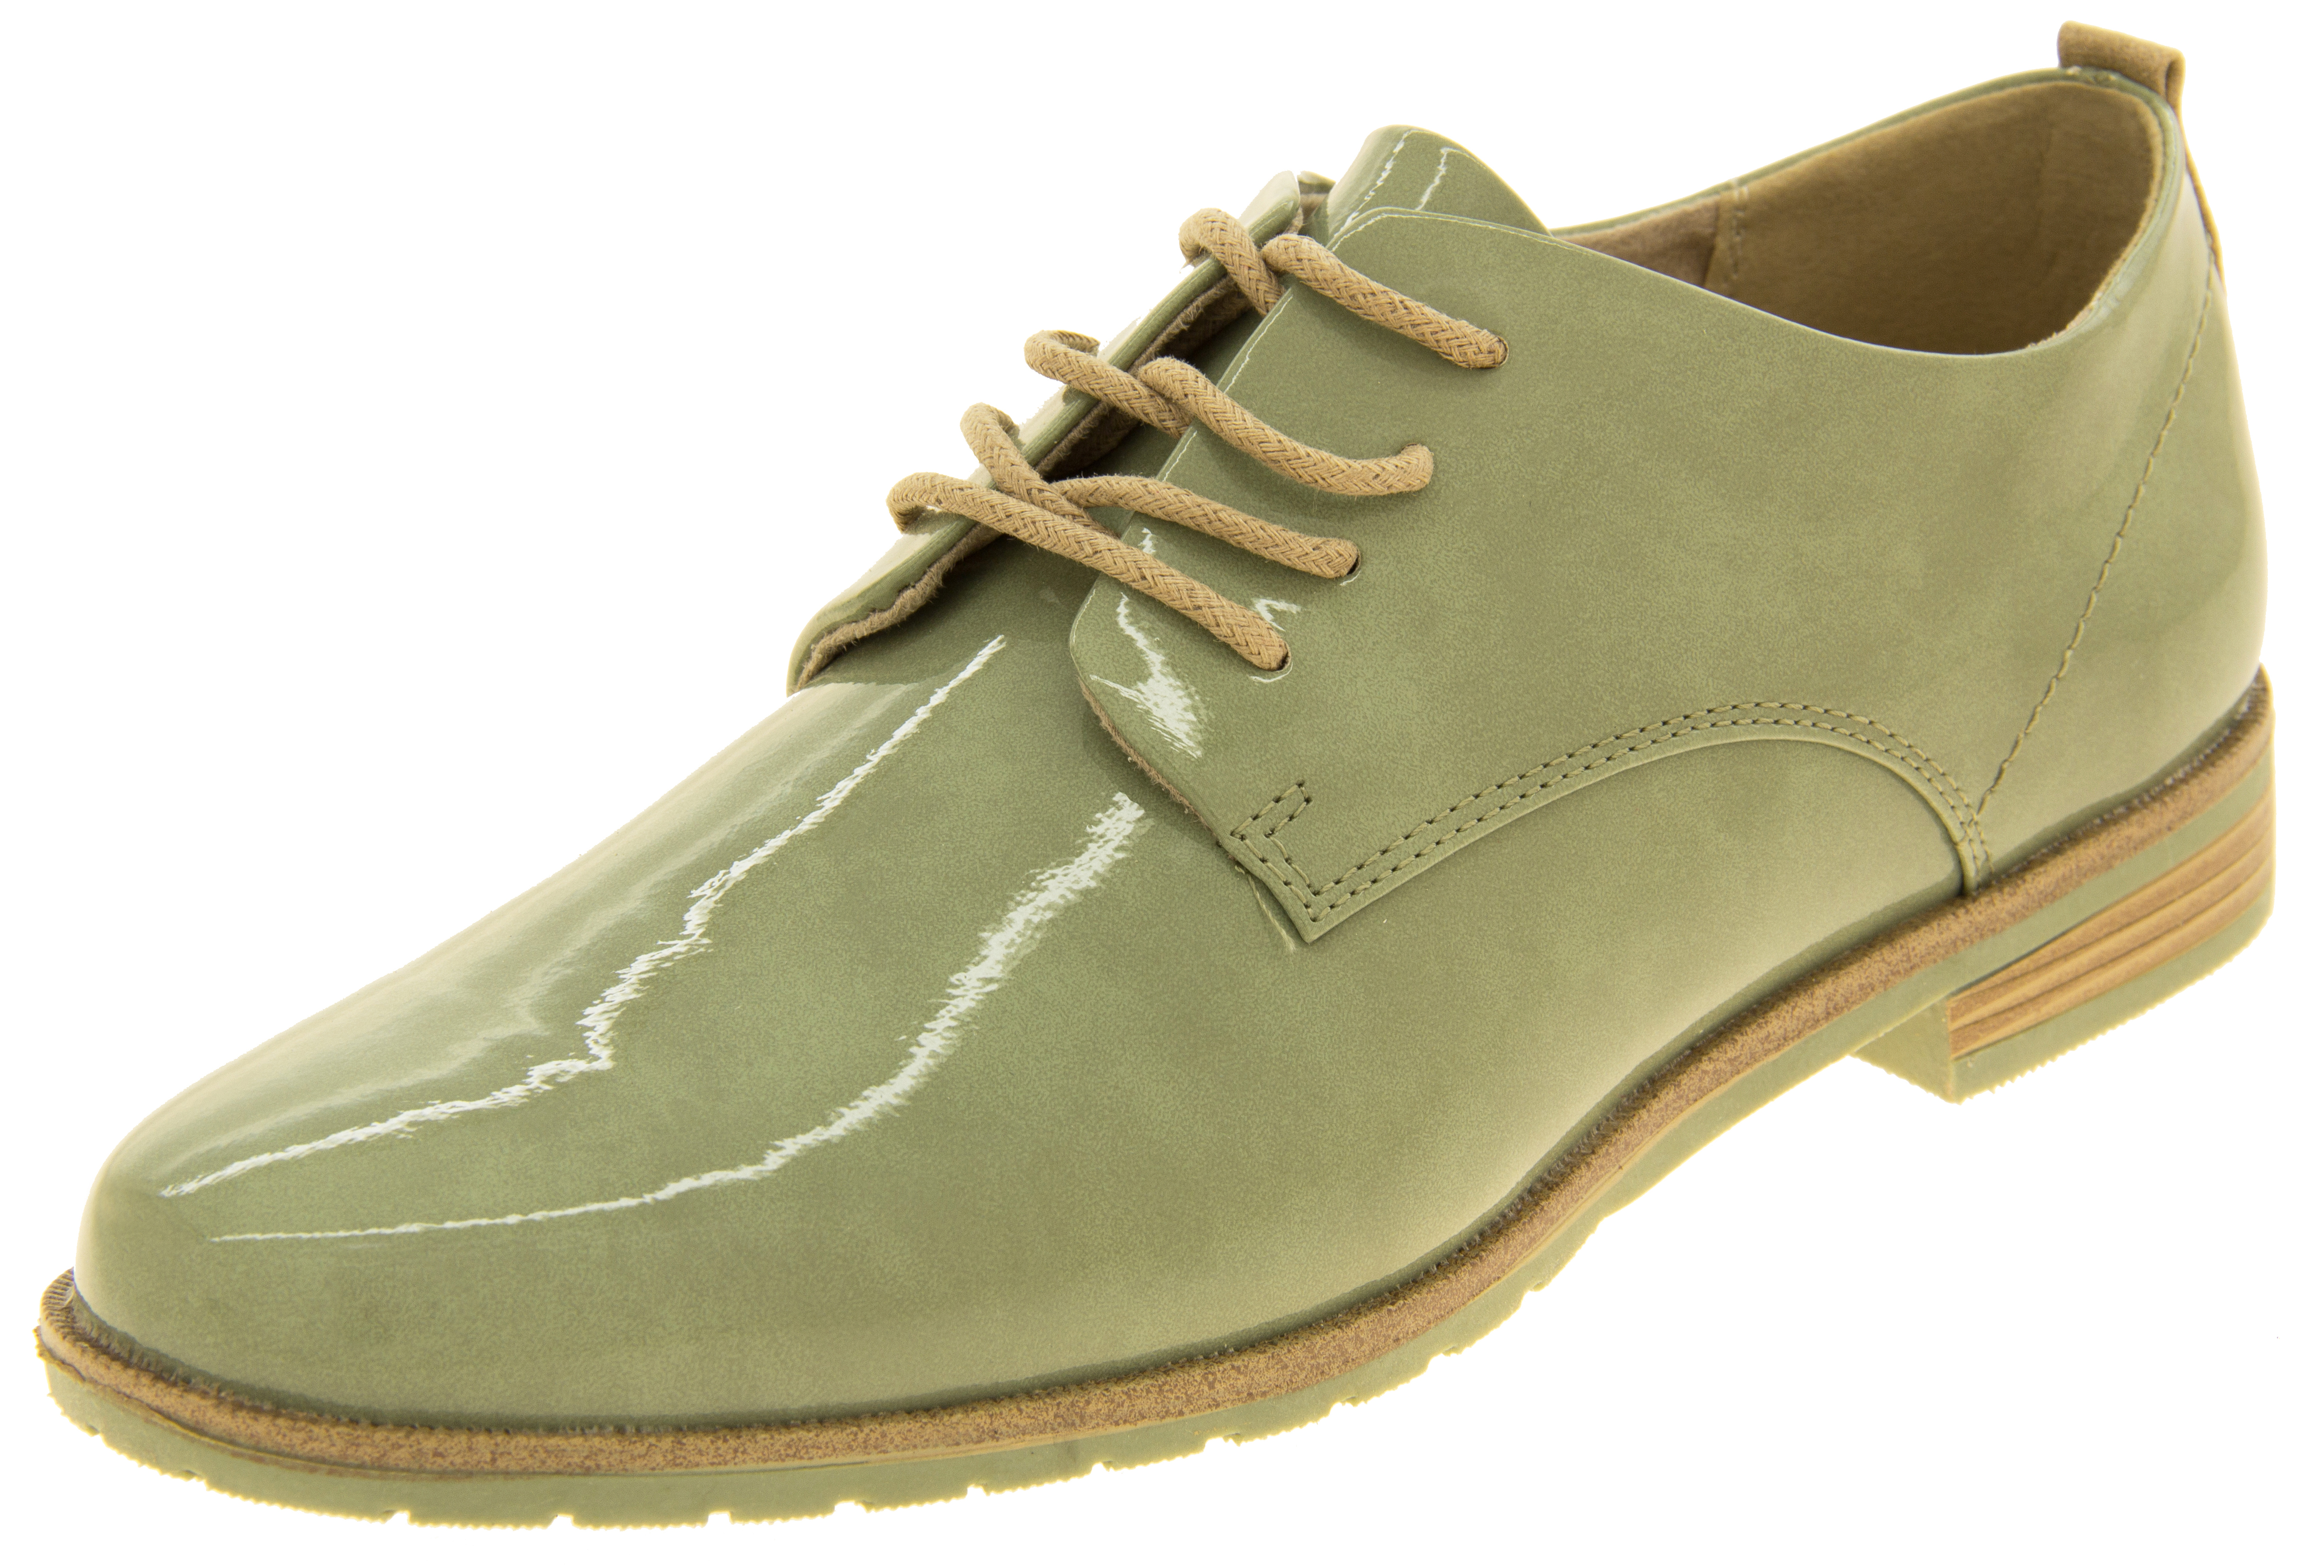 9f0bfd1689a18 Ladies MARCO TOZZI Faux Leather Lace Up Summer Brogue Shoes | Womens, Mens,  Kids Shoes | Heels, Trainers & Boots | Footwear Studio